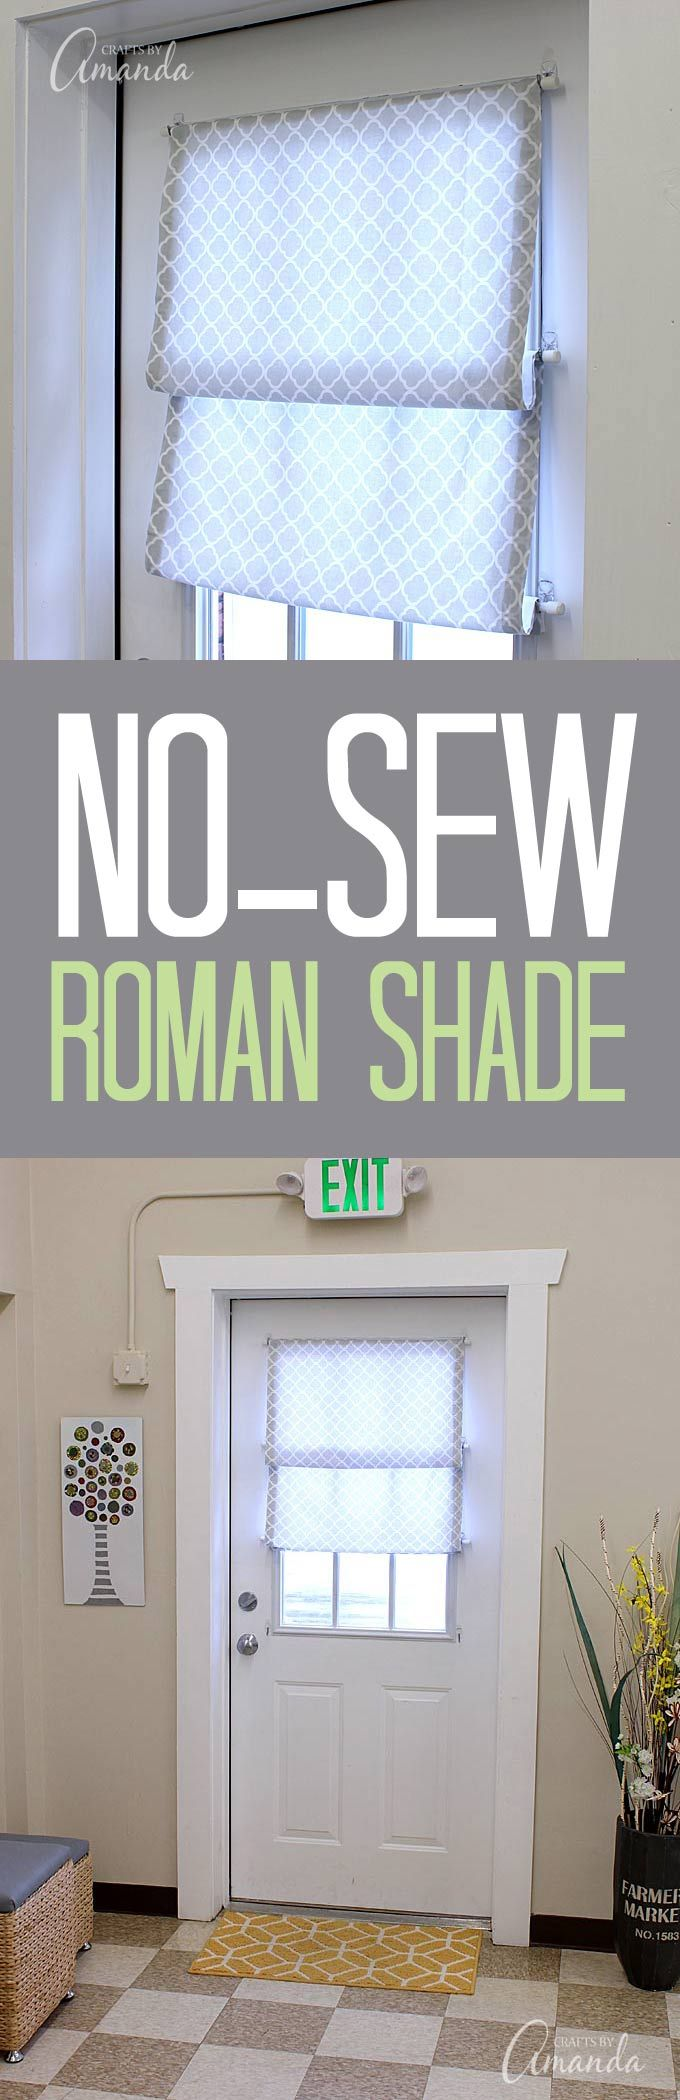 Door window roman shade - How To Make A No Sew Roman Shade For Your Window Or Door This One